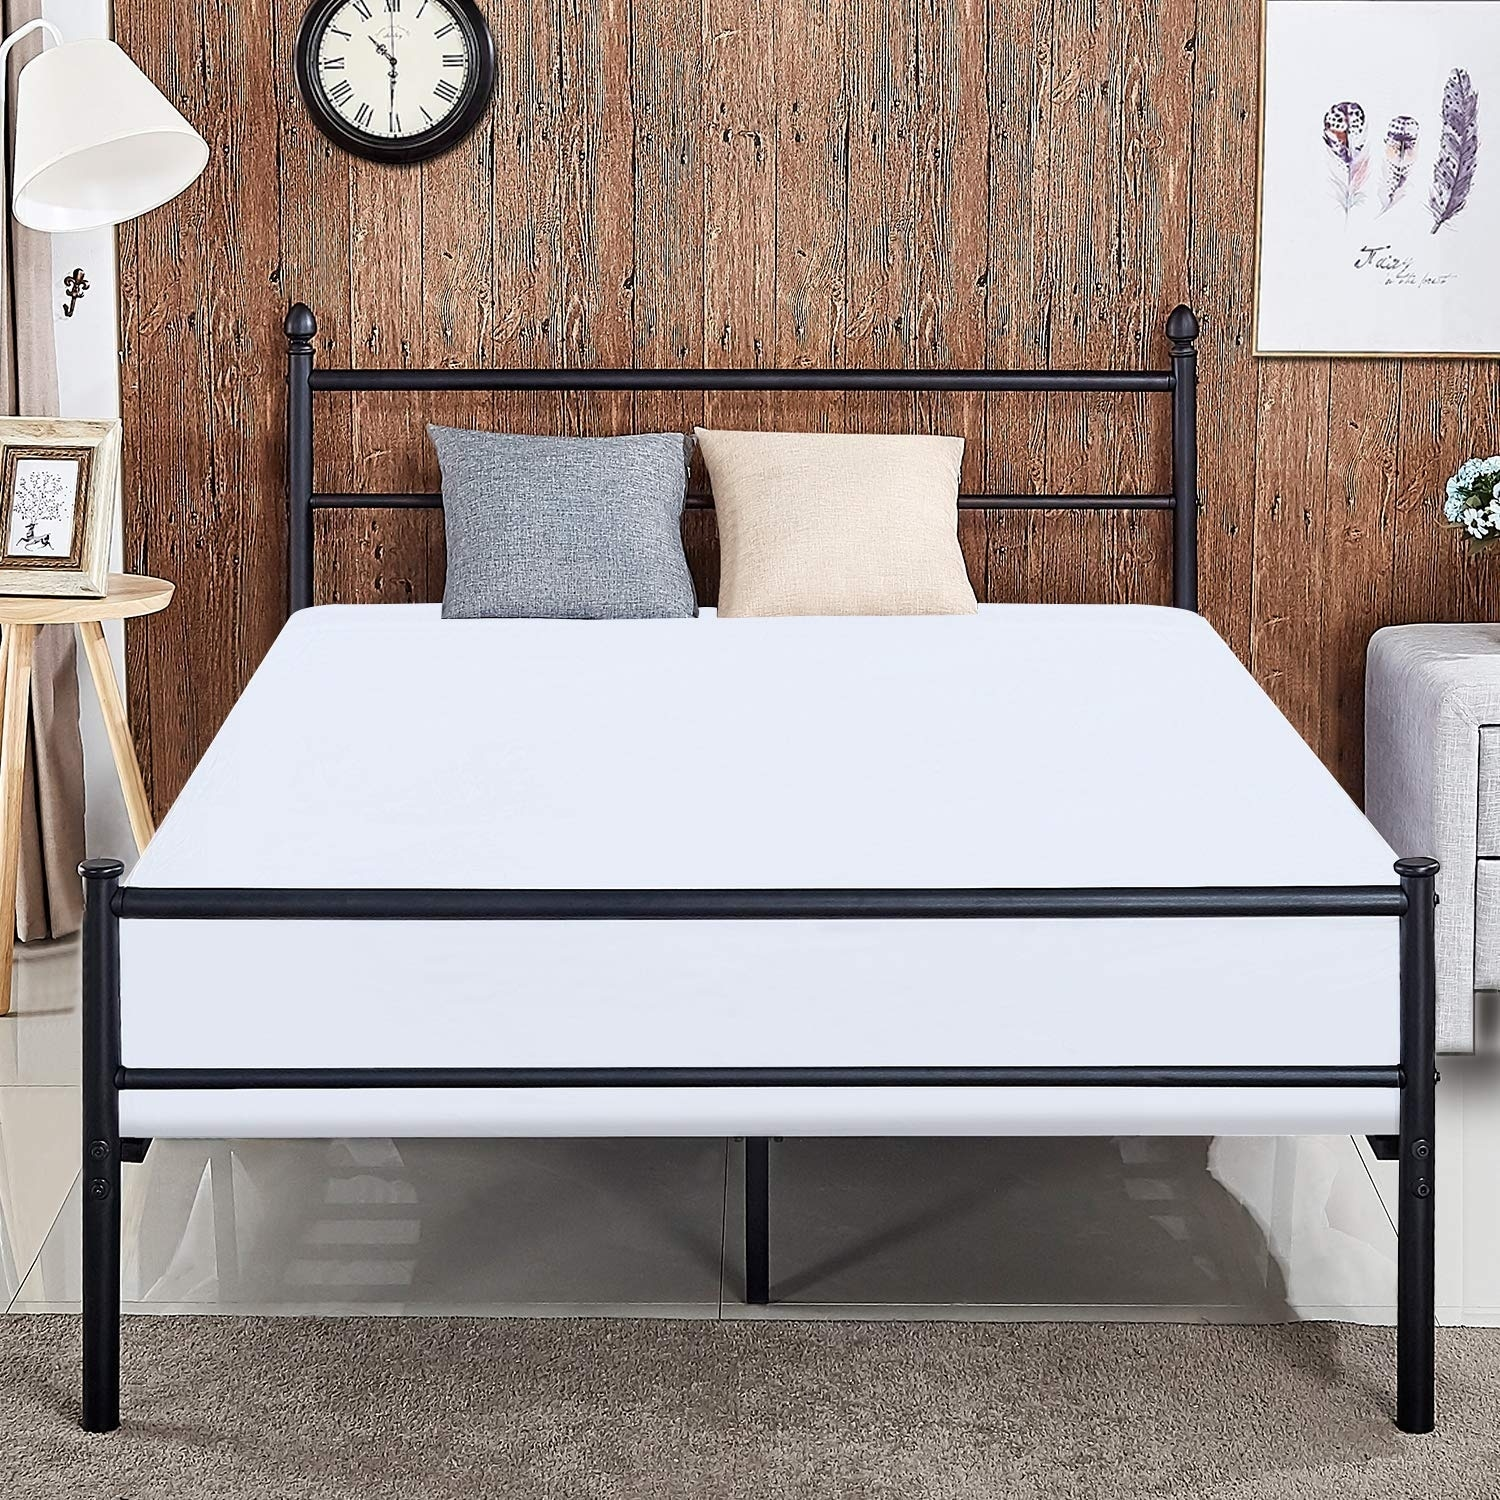 Shop VECELO Full Size Platform Bed Frame,Metal Beds Box Spring ...